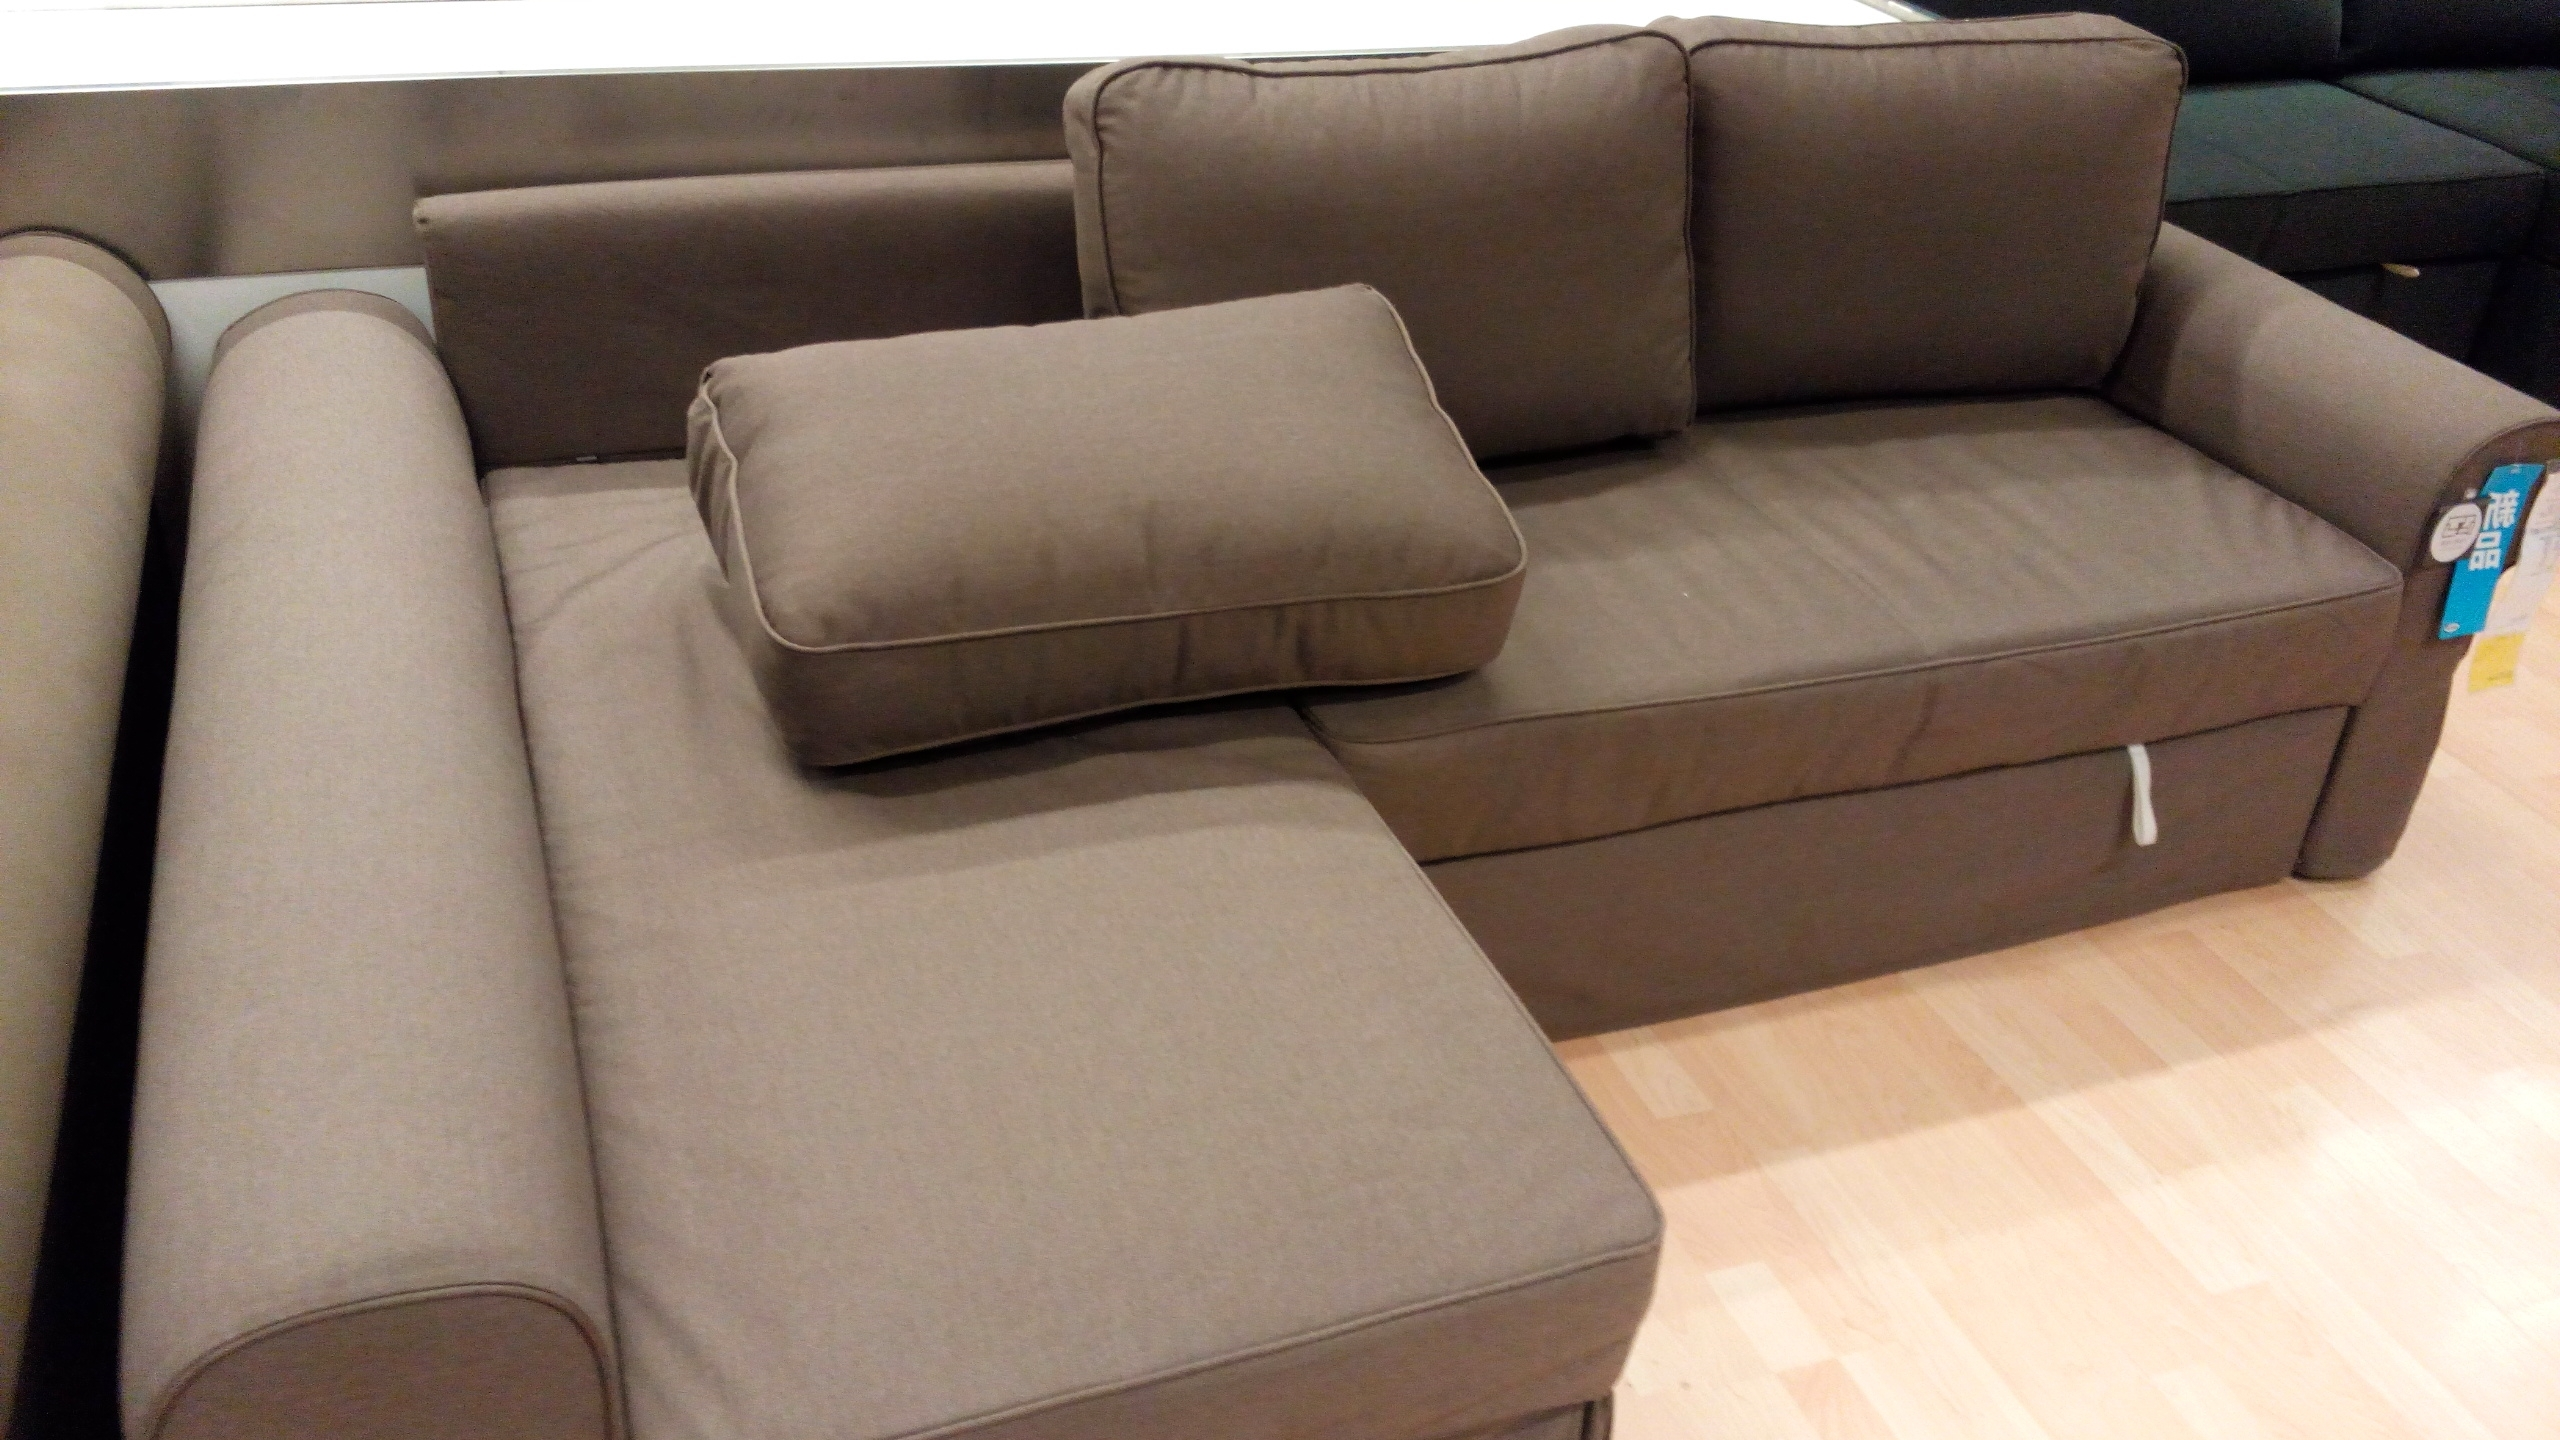 Fashionable Ikea Vilasund And Backabro Review – Return Of The Sofa Bed Clones! With Sofa Beds With Chaise (View 9 of 15)